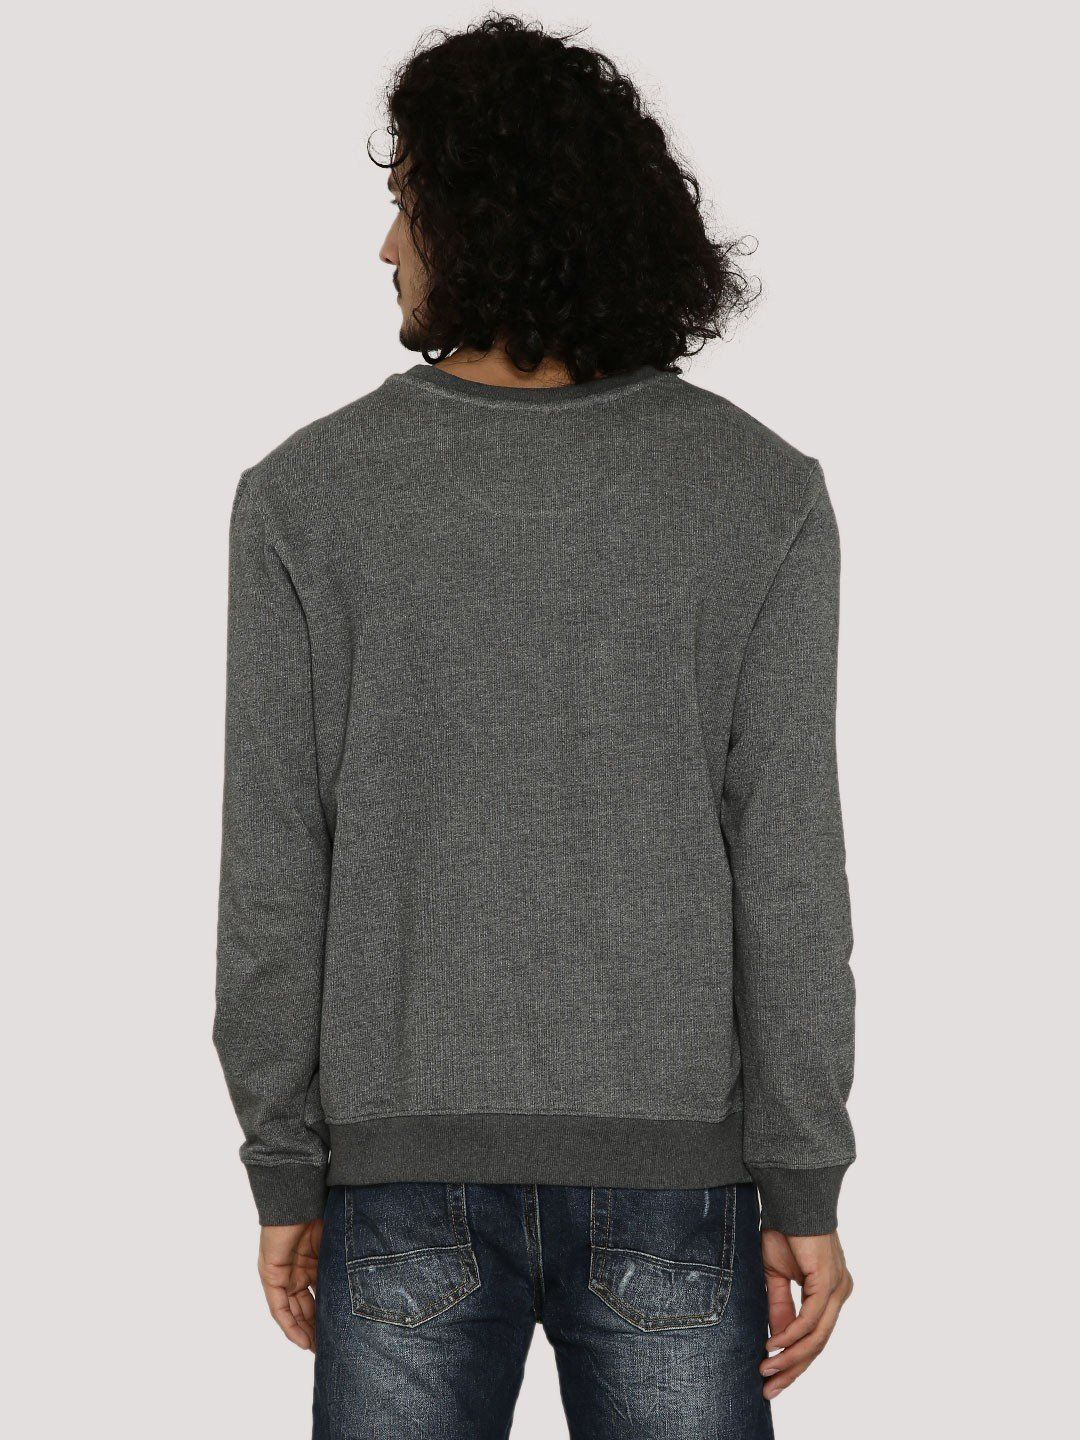 DRAKE AND BAKE Grey Melange Sweatshirt - Fighting Fame  - 2